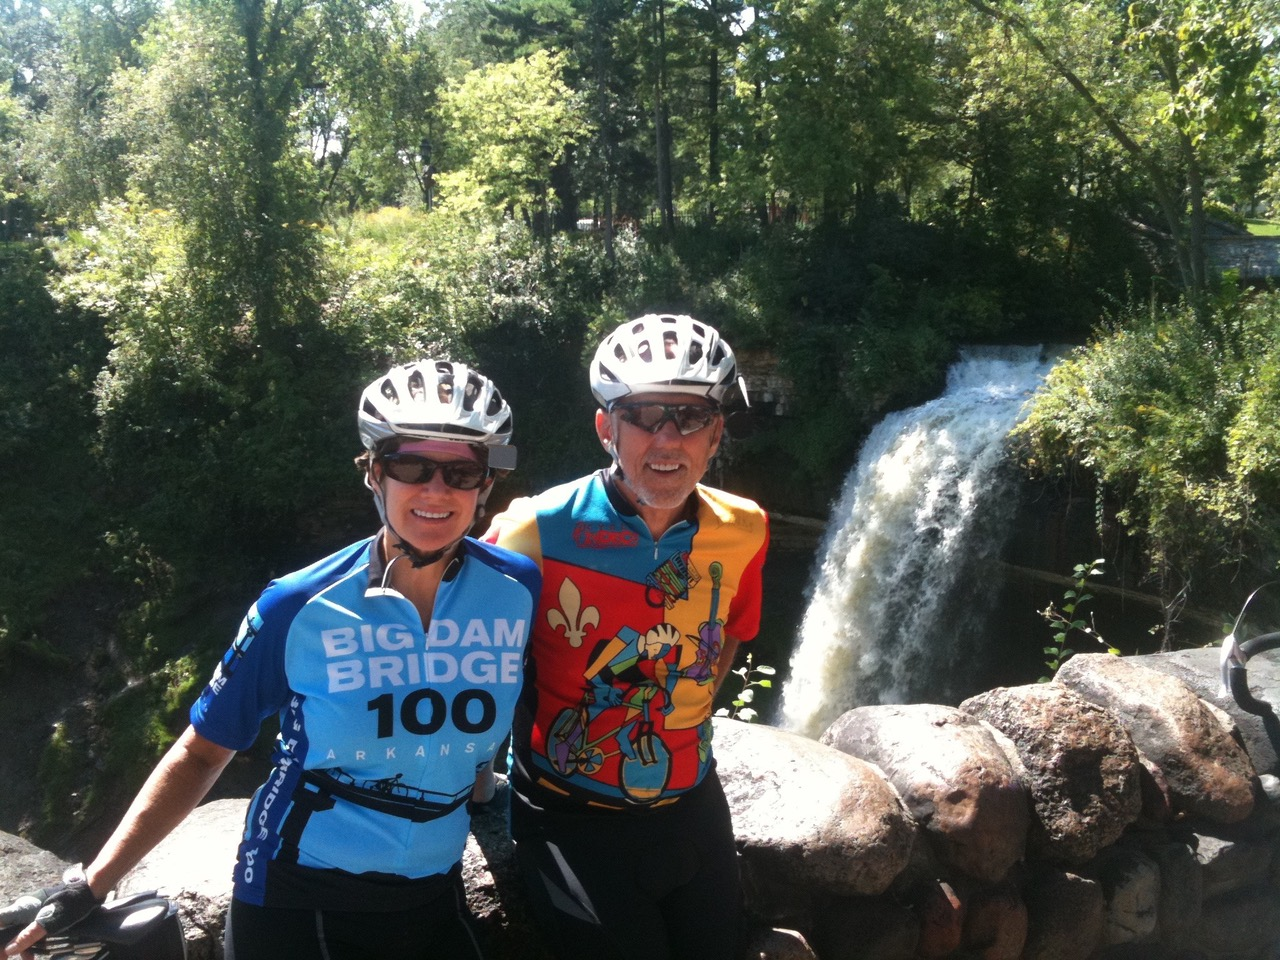 Peggy and her husband, Lee, pose in front of Minnihaha Falls in Minneapolis.